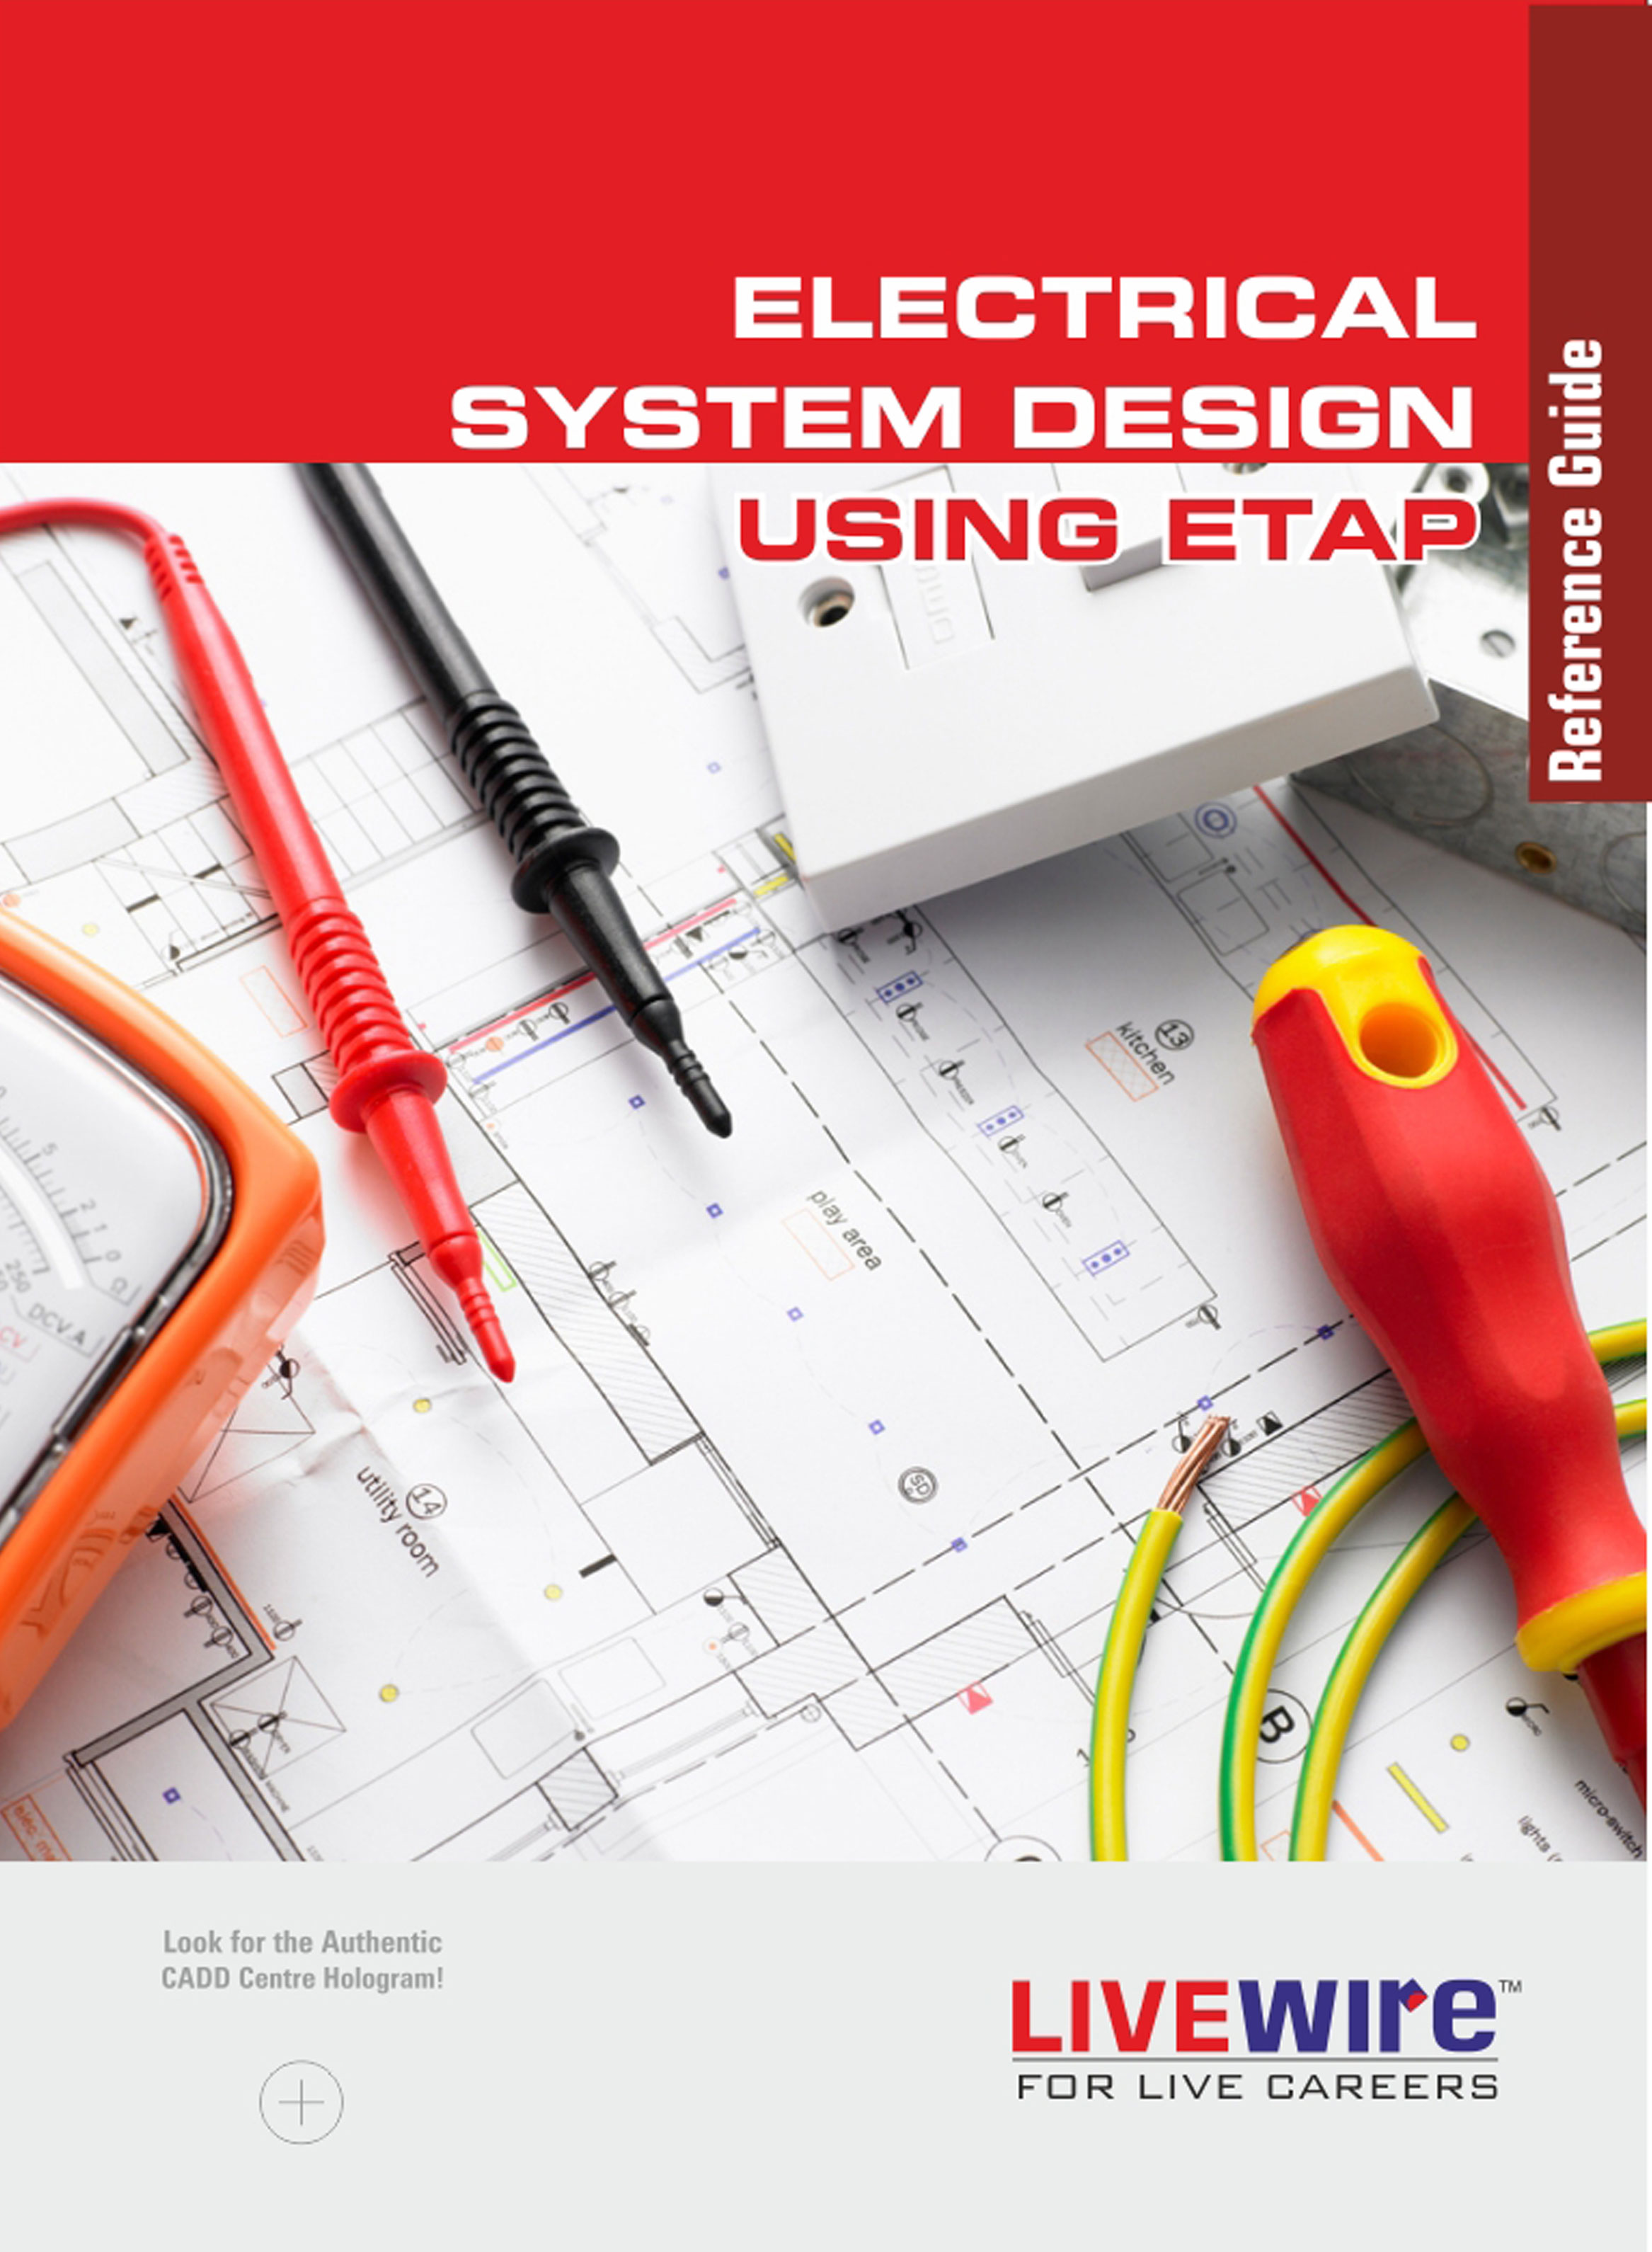 Electrical Engineering System Design Training Etap Course